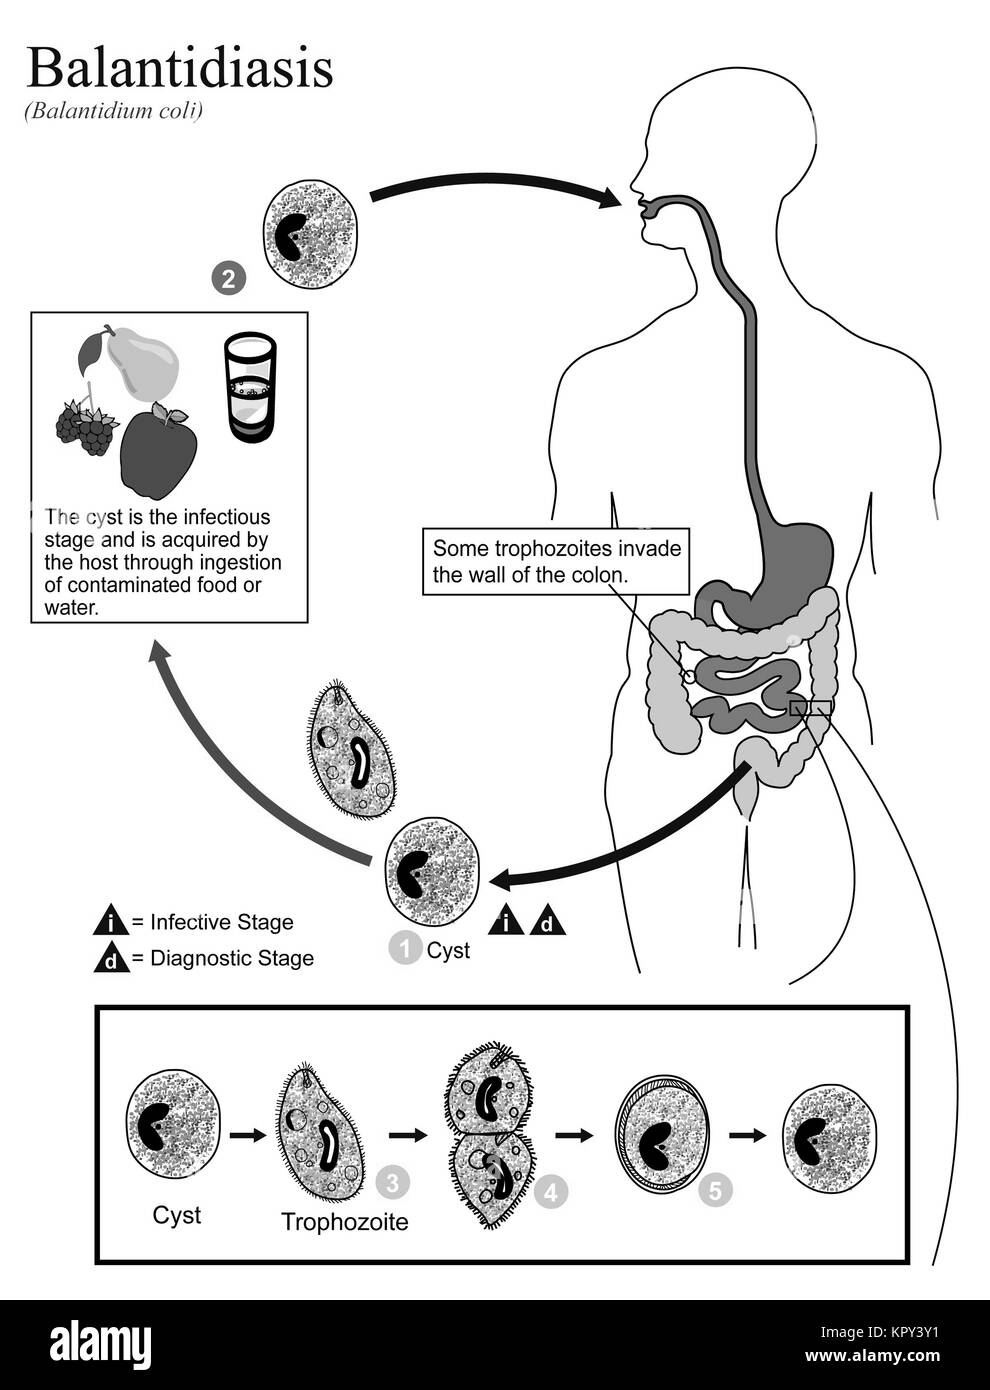 medium resolution of illustrated diagram showing the life cycle of balantidium coli the causal agent of balantidiasis